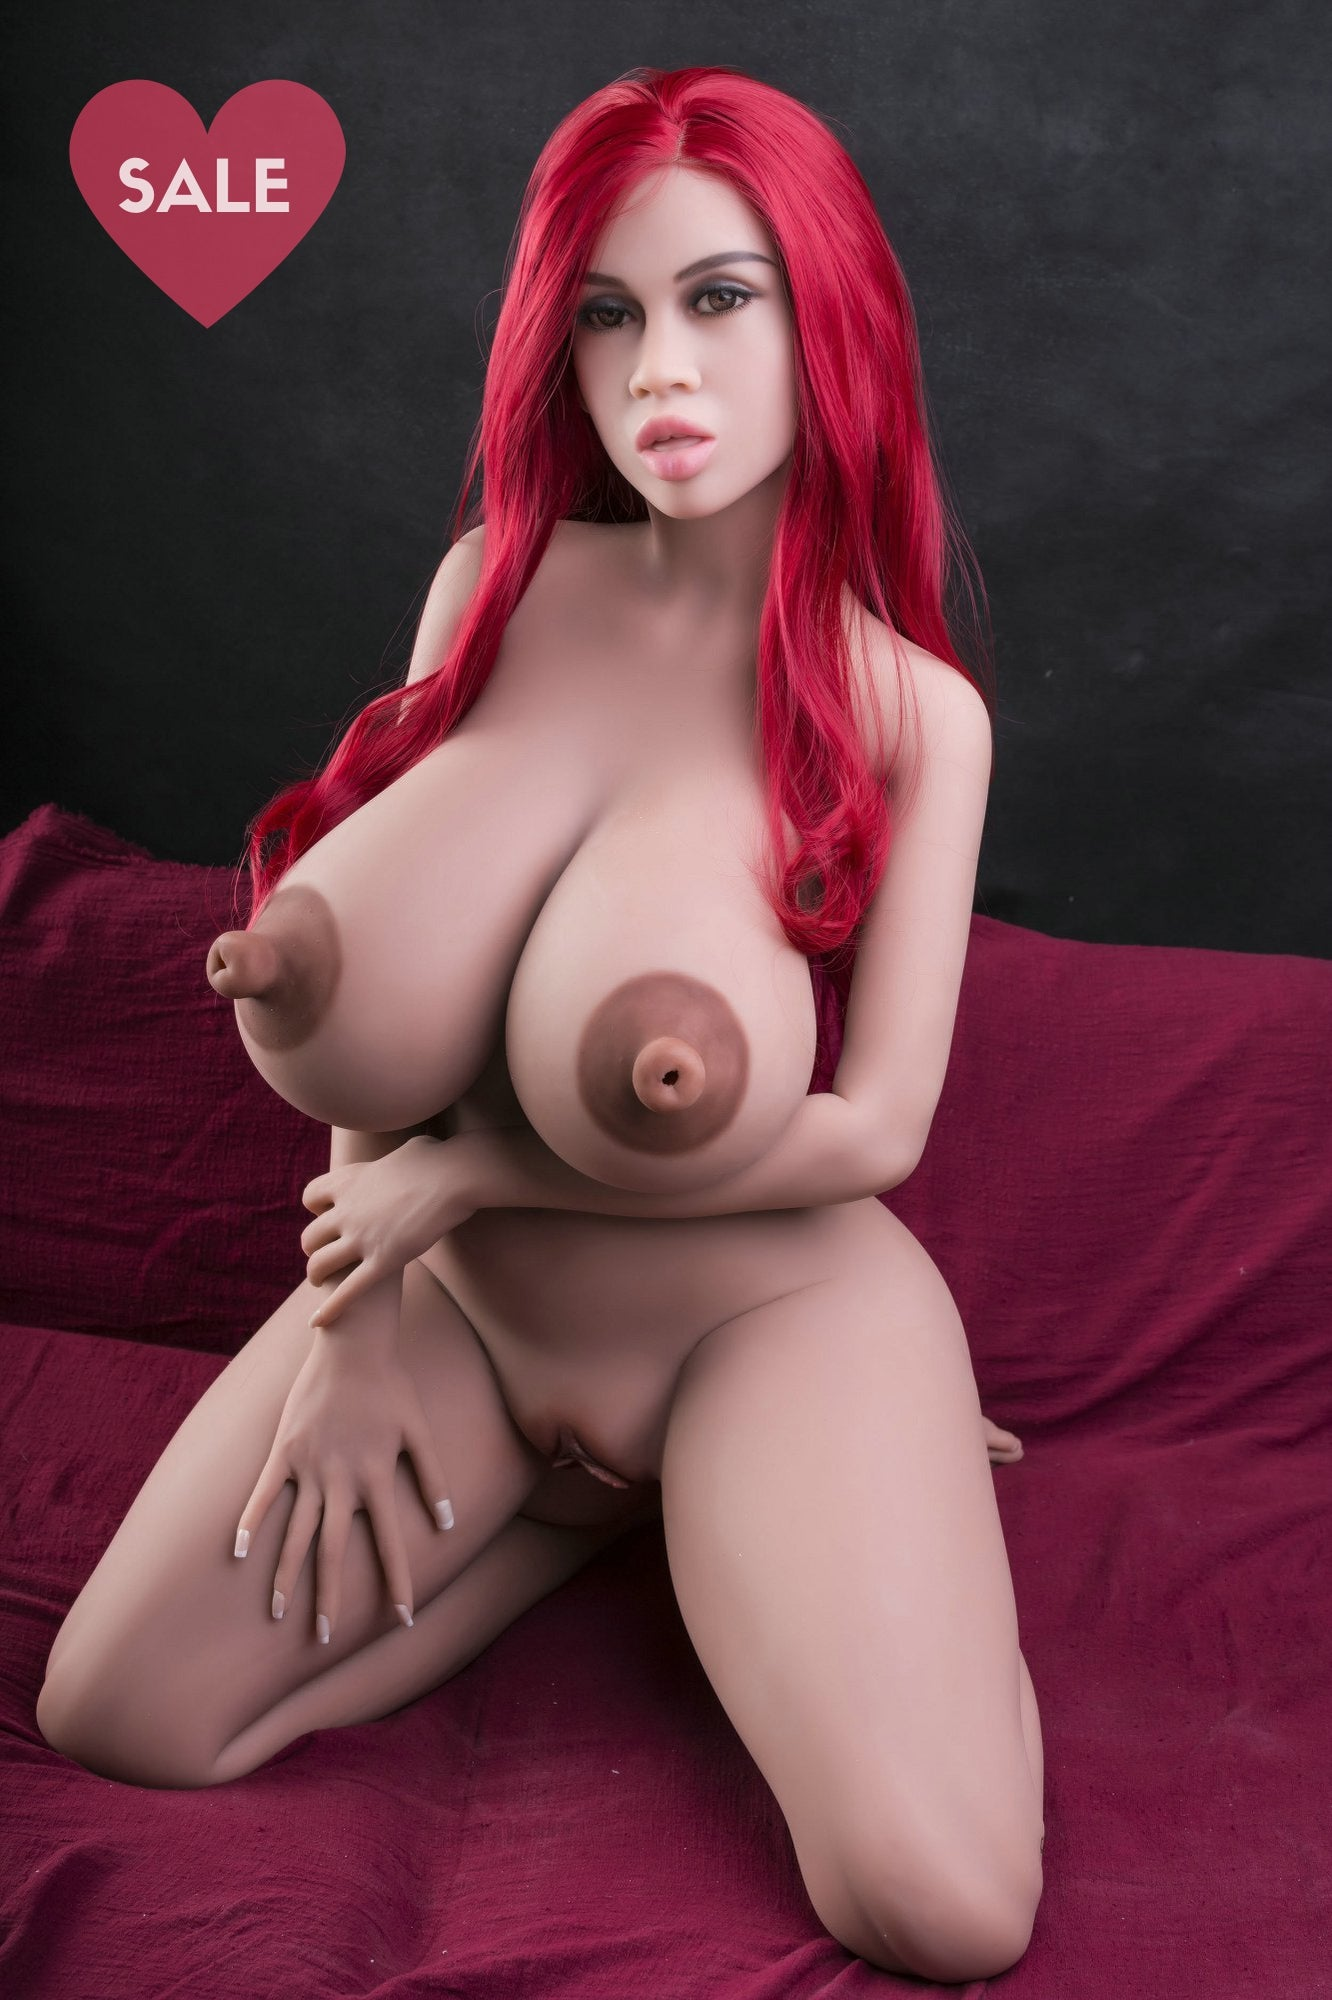 YL Dolls 160cm | Penetrable Breasts Sex Doll - Aisha-Silicone Lovers Sex Dolls